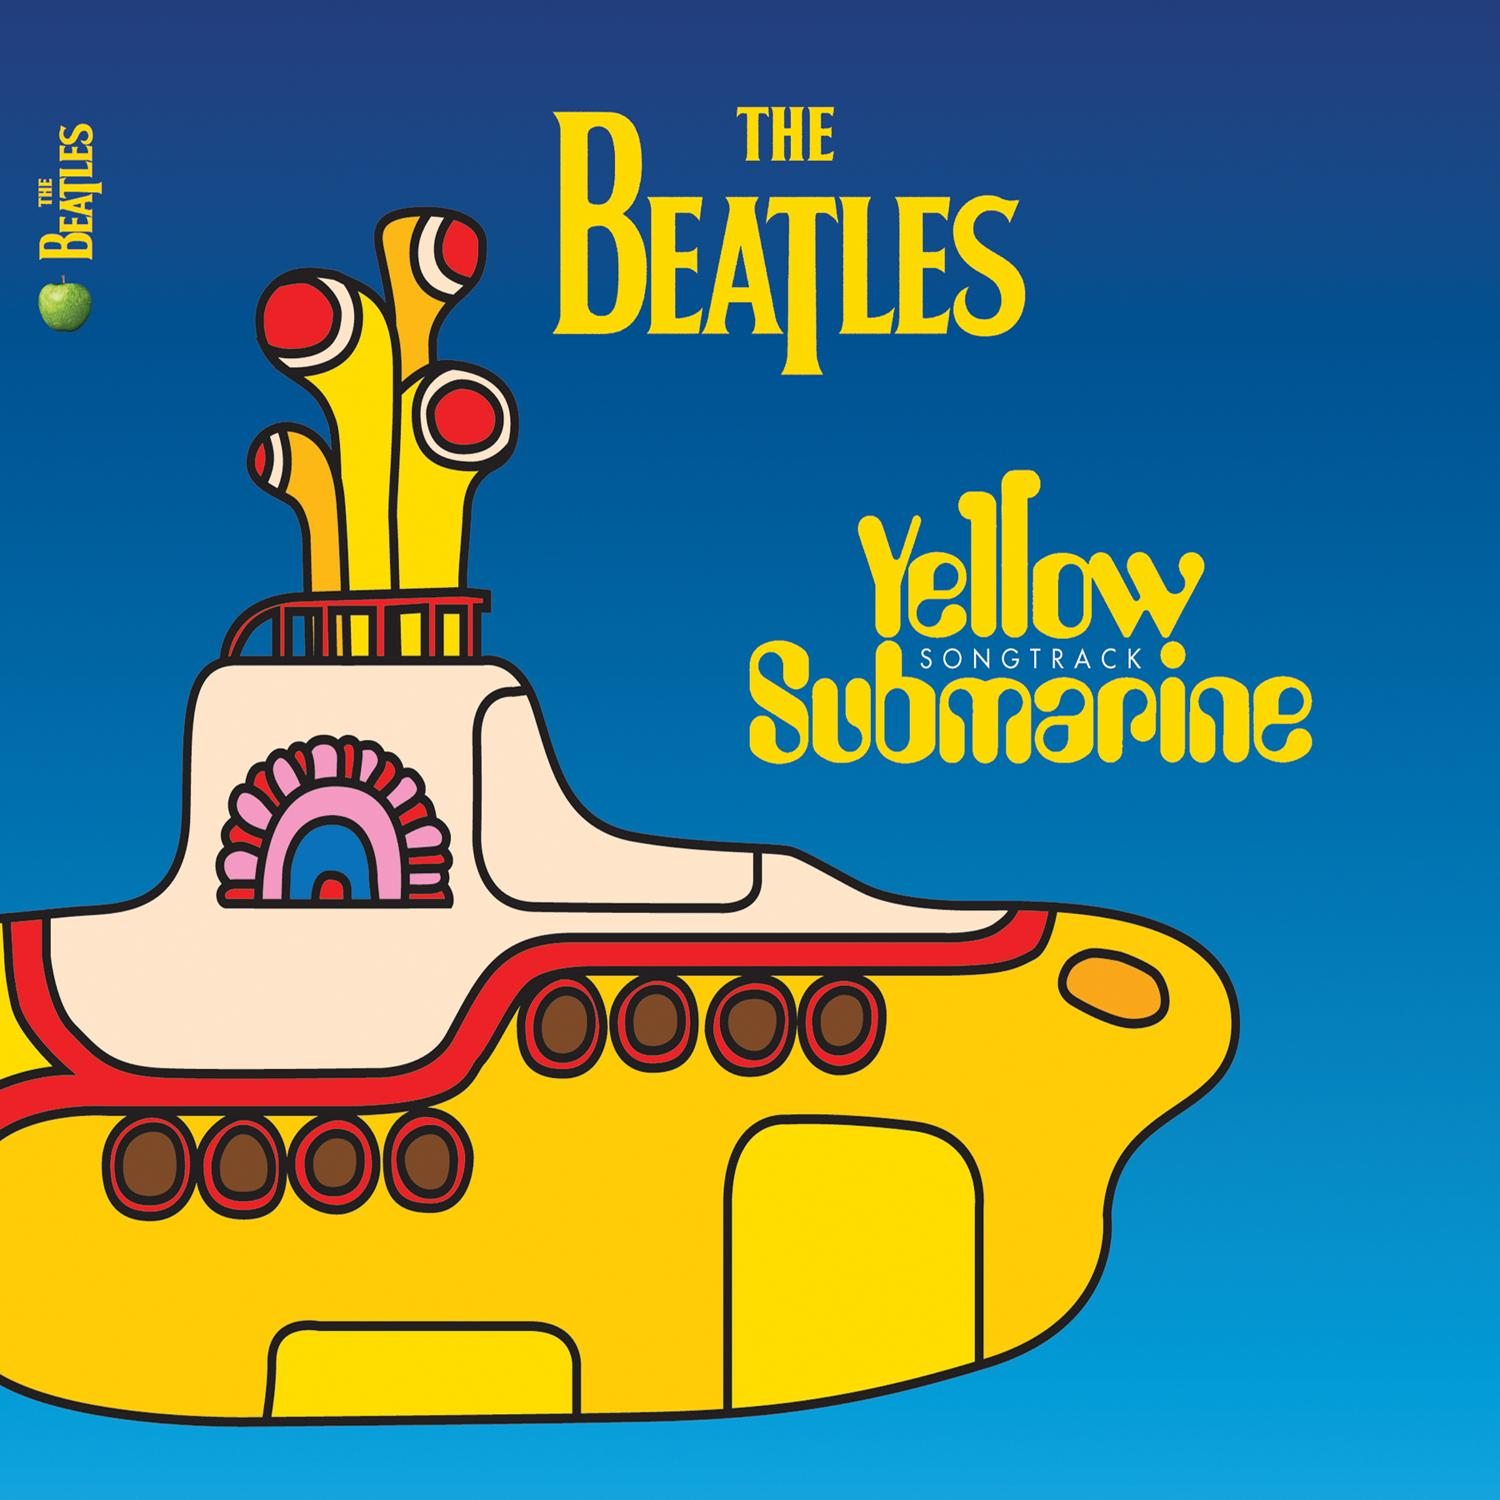 The Beatles - Yellow Submarine Songtrack Remaster